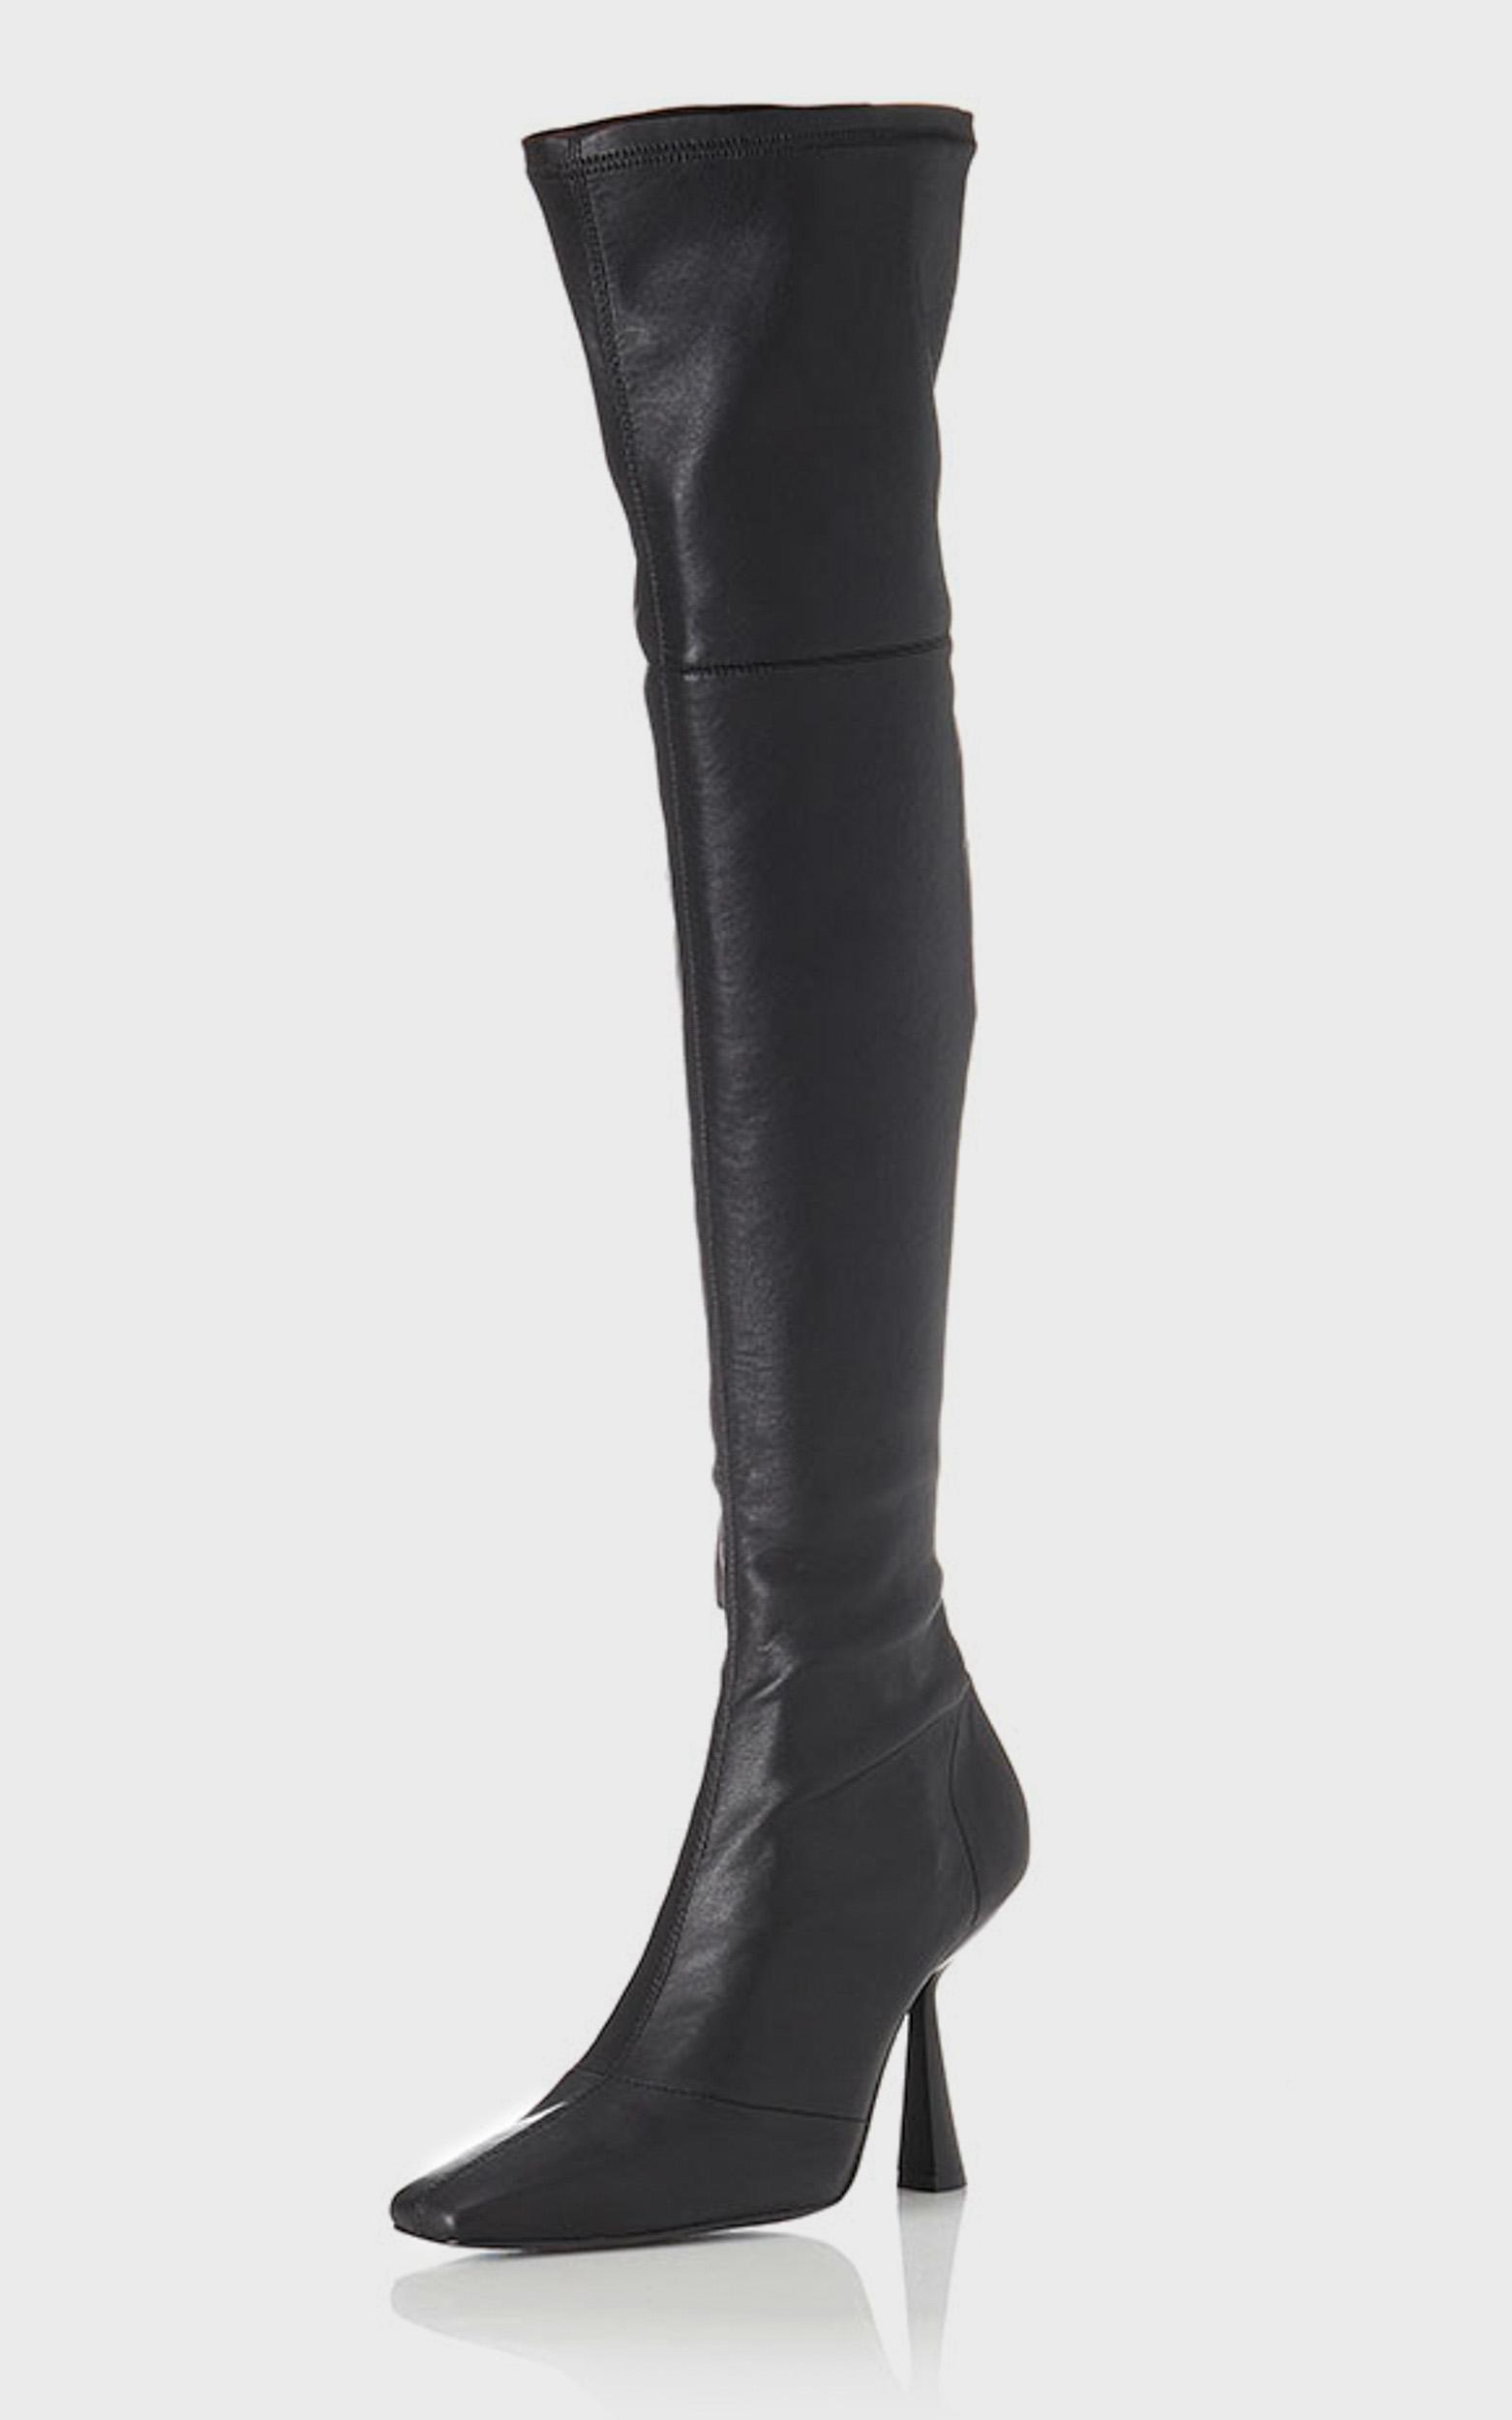 Alias Mae - Victoria Boots in Black Stretch - 5.5, Black, hi-res image number null